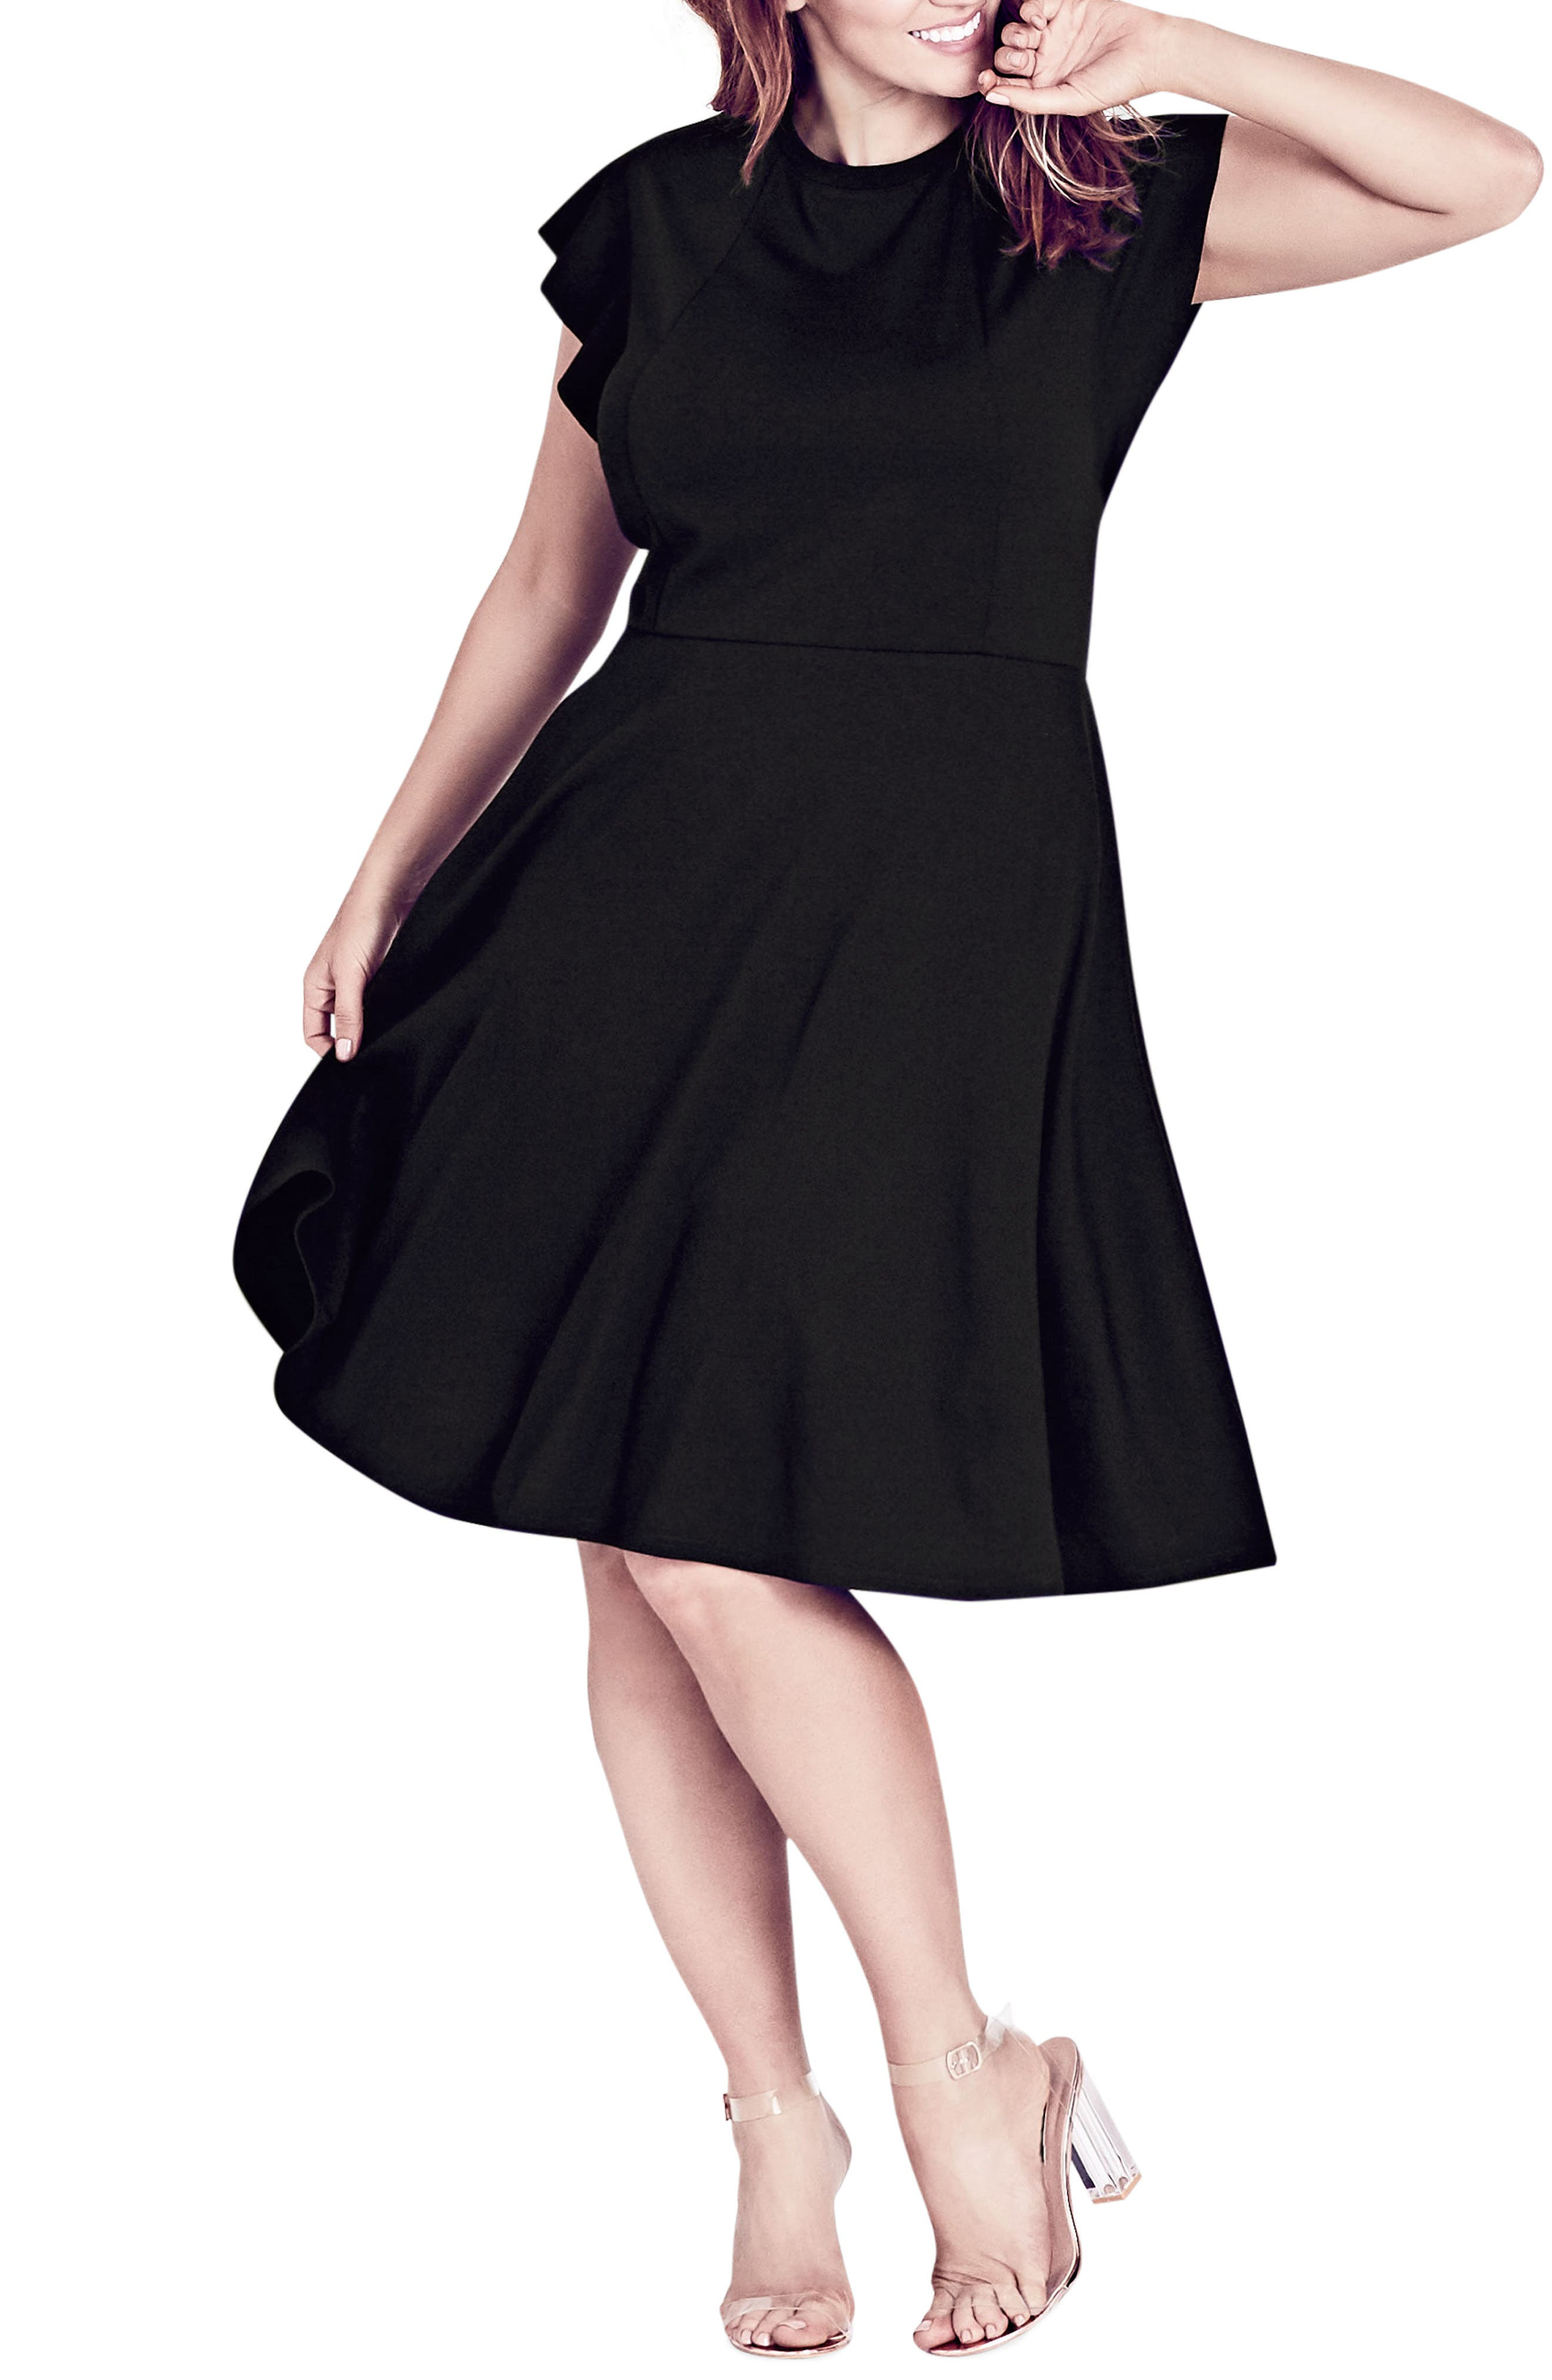 PLUS SIZE Lining cost for 1 dress